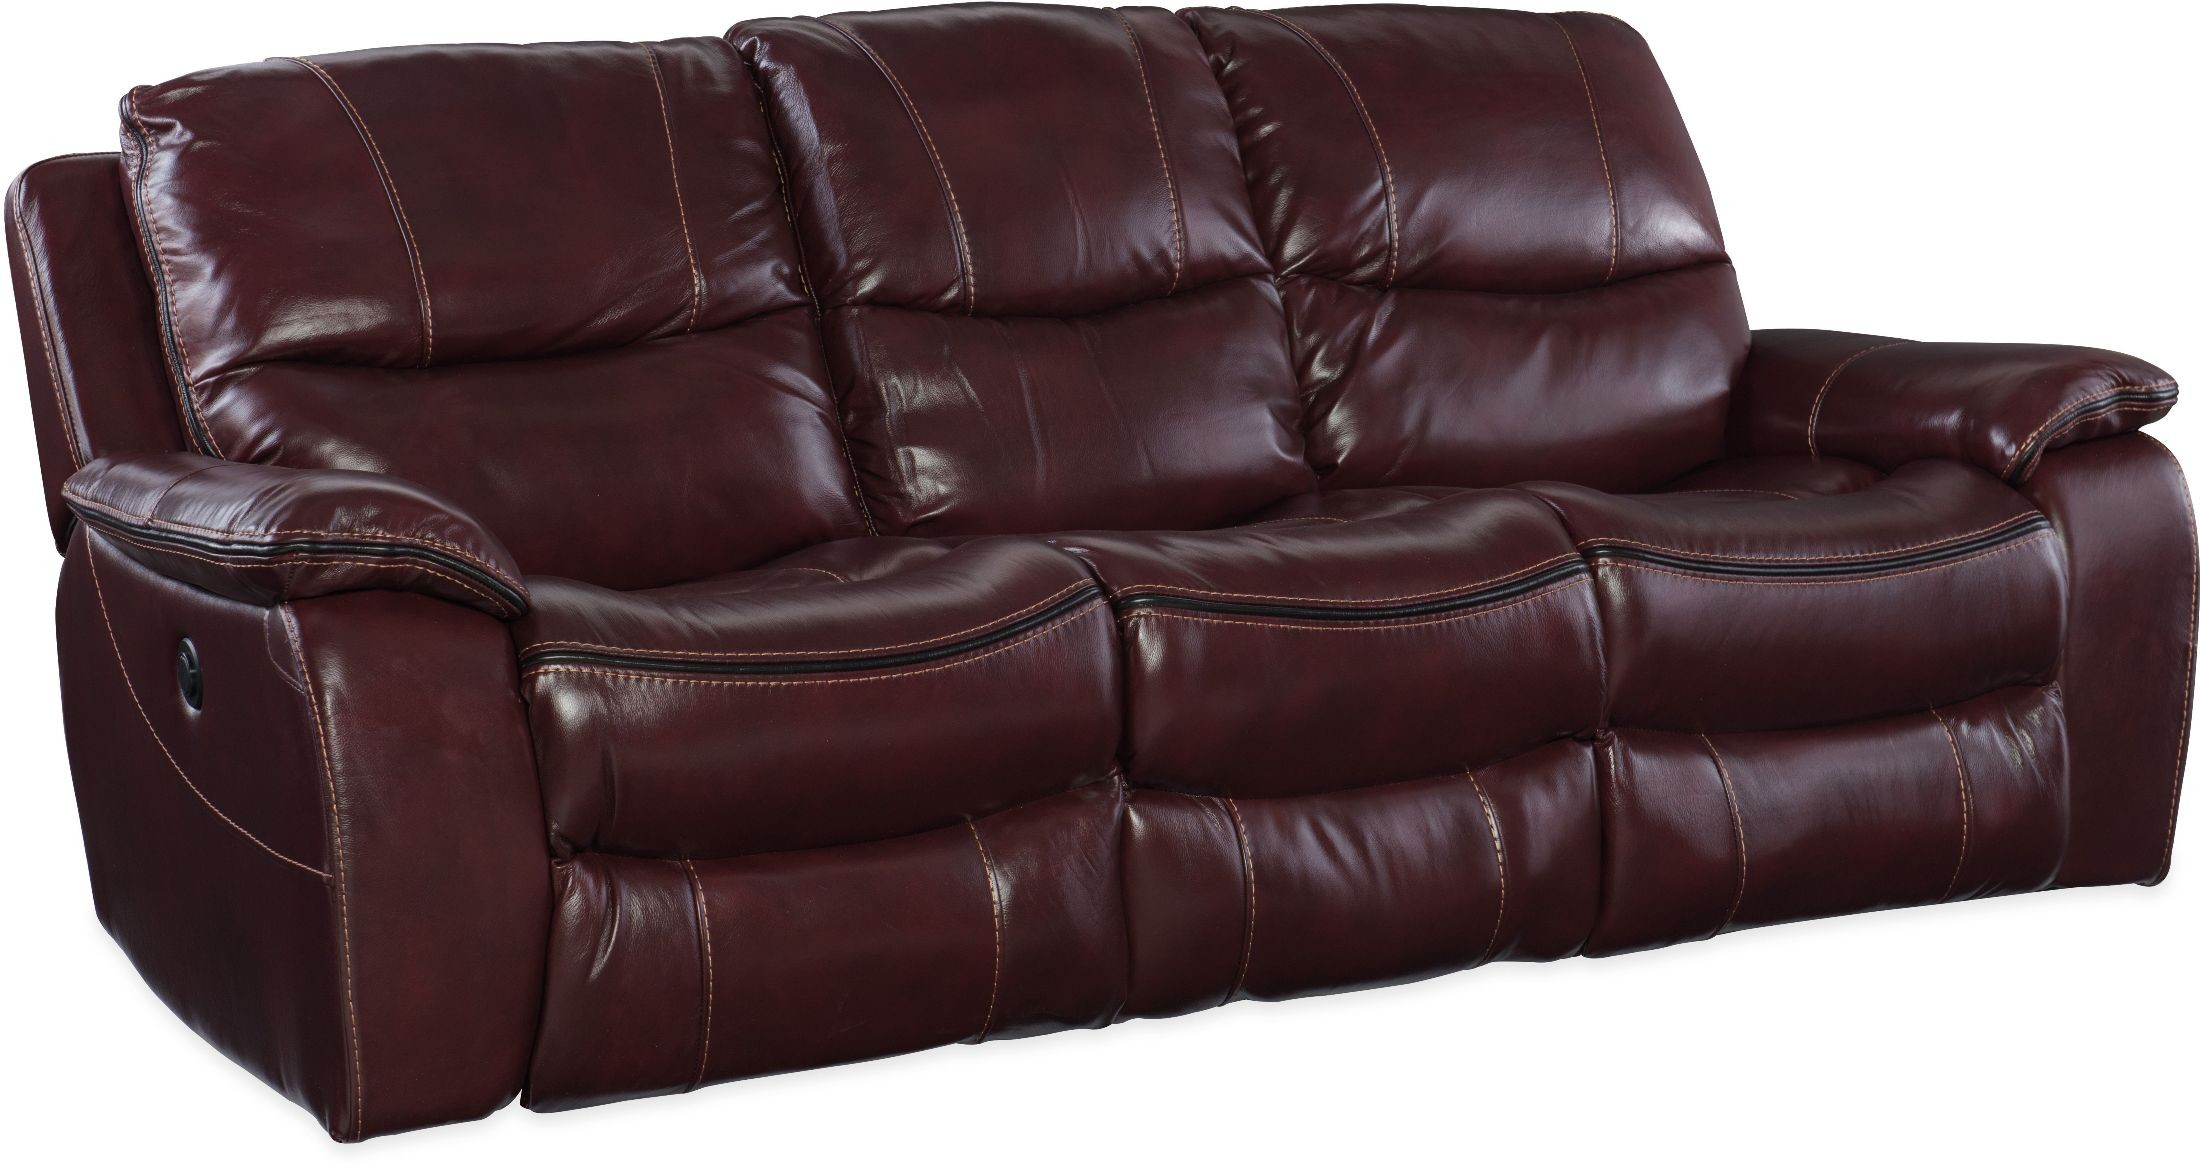 Gregory Red Power Reclining Sofa Ss624 P3 069 Hooker Furniture